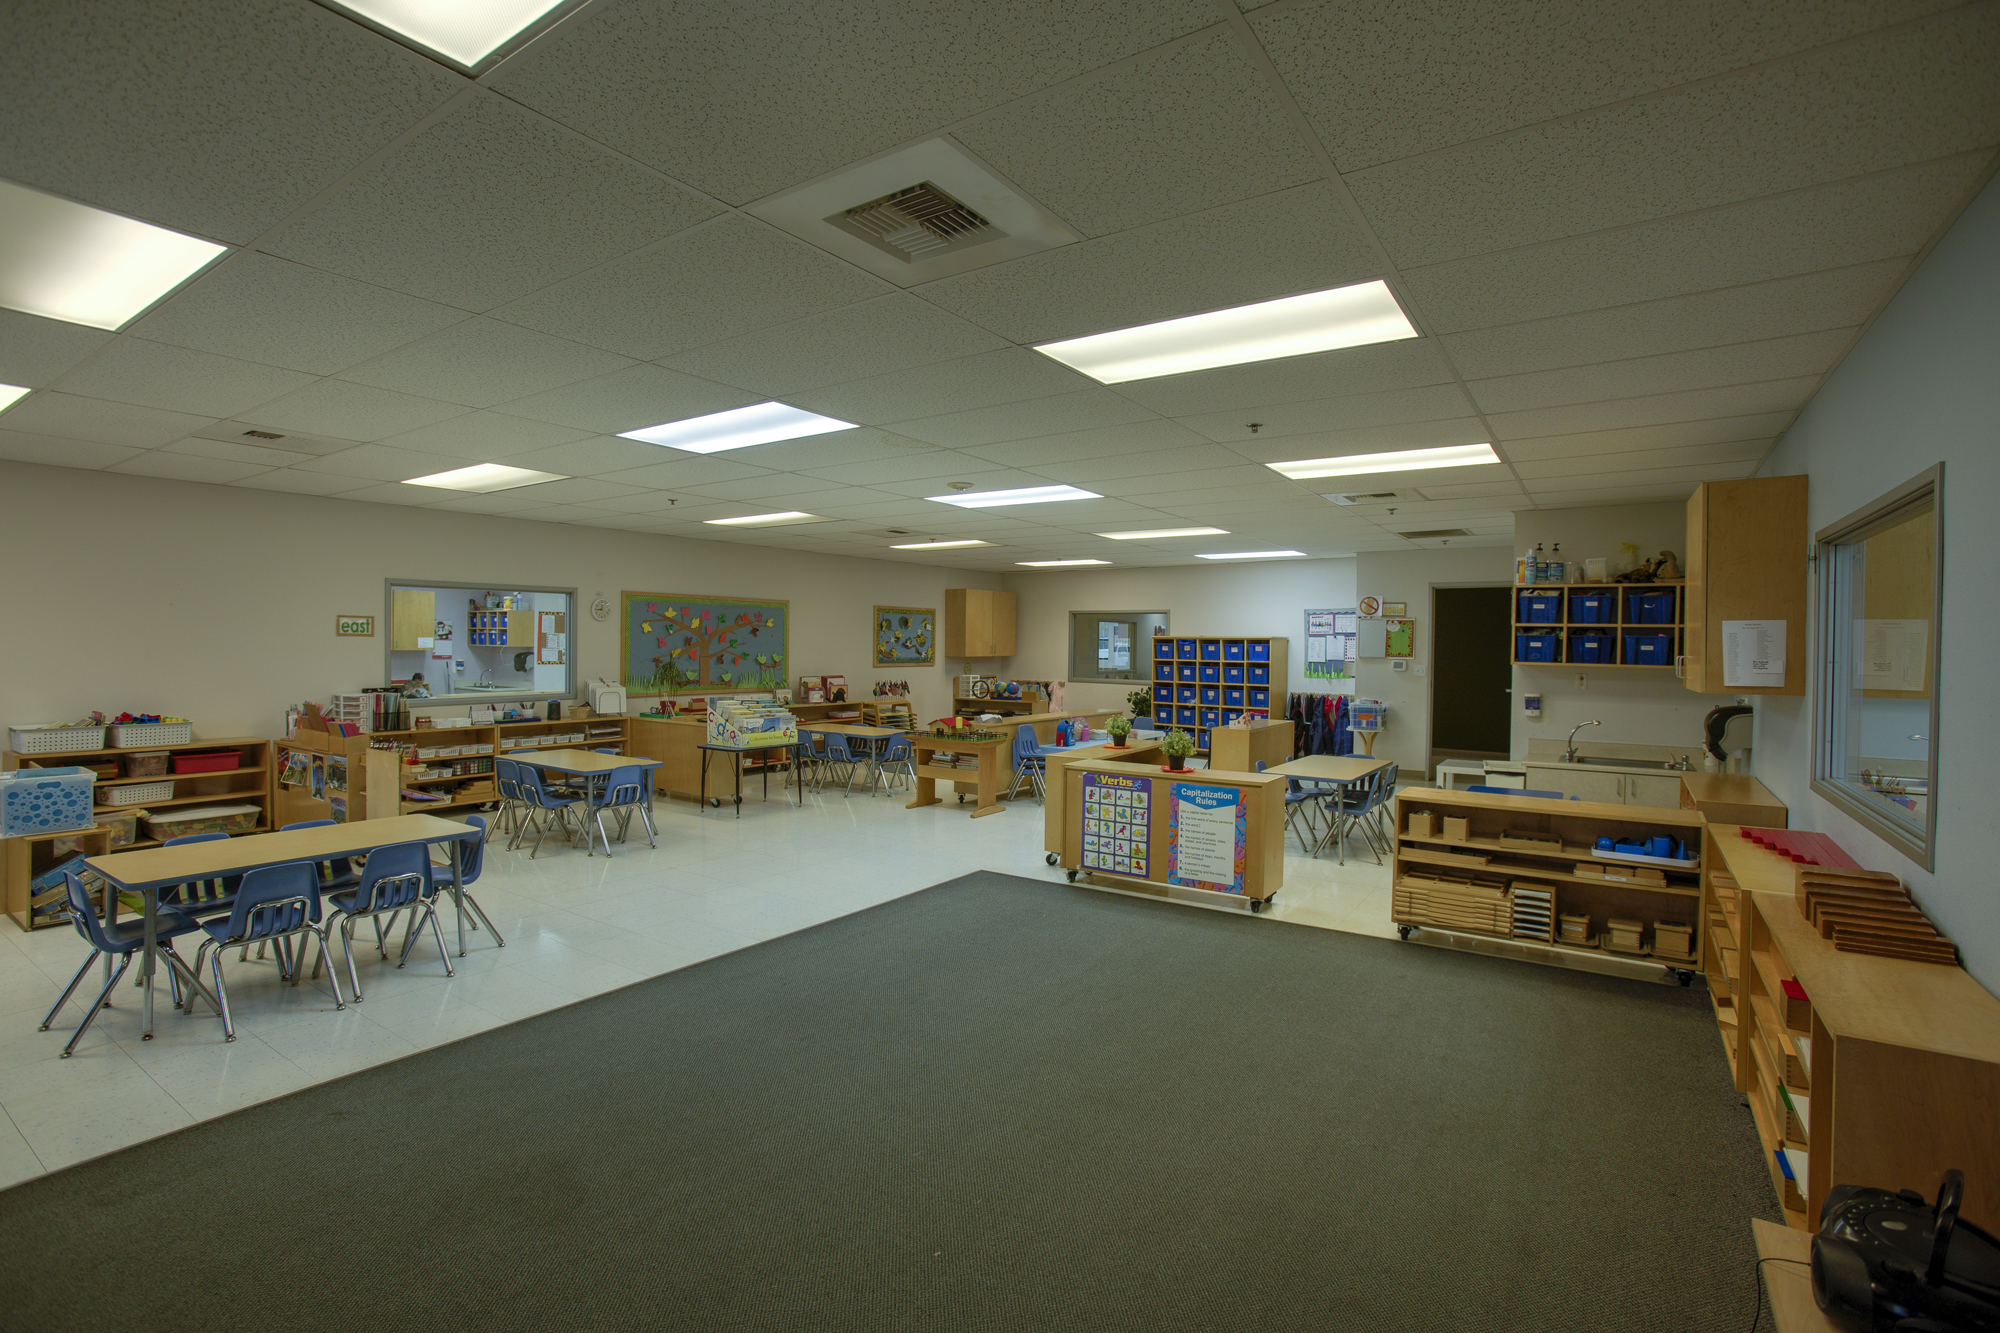 Little-Blossom-Montessori-Preschool-and-Daycare-Services-Sacramento-Natomas_27.jpg